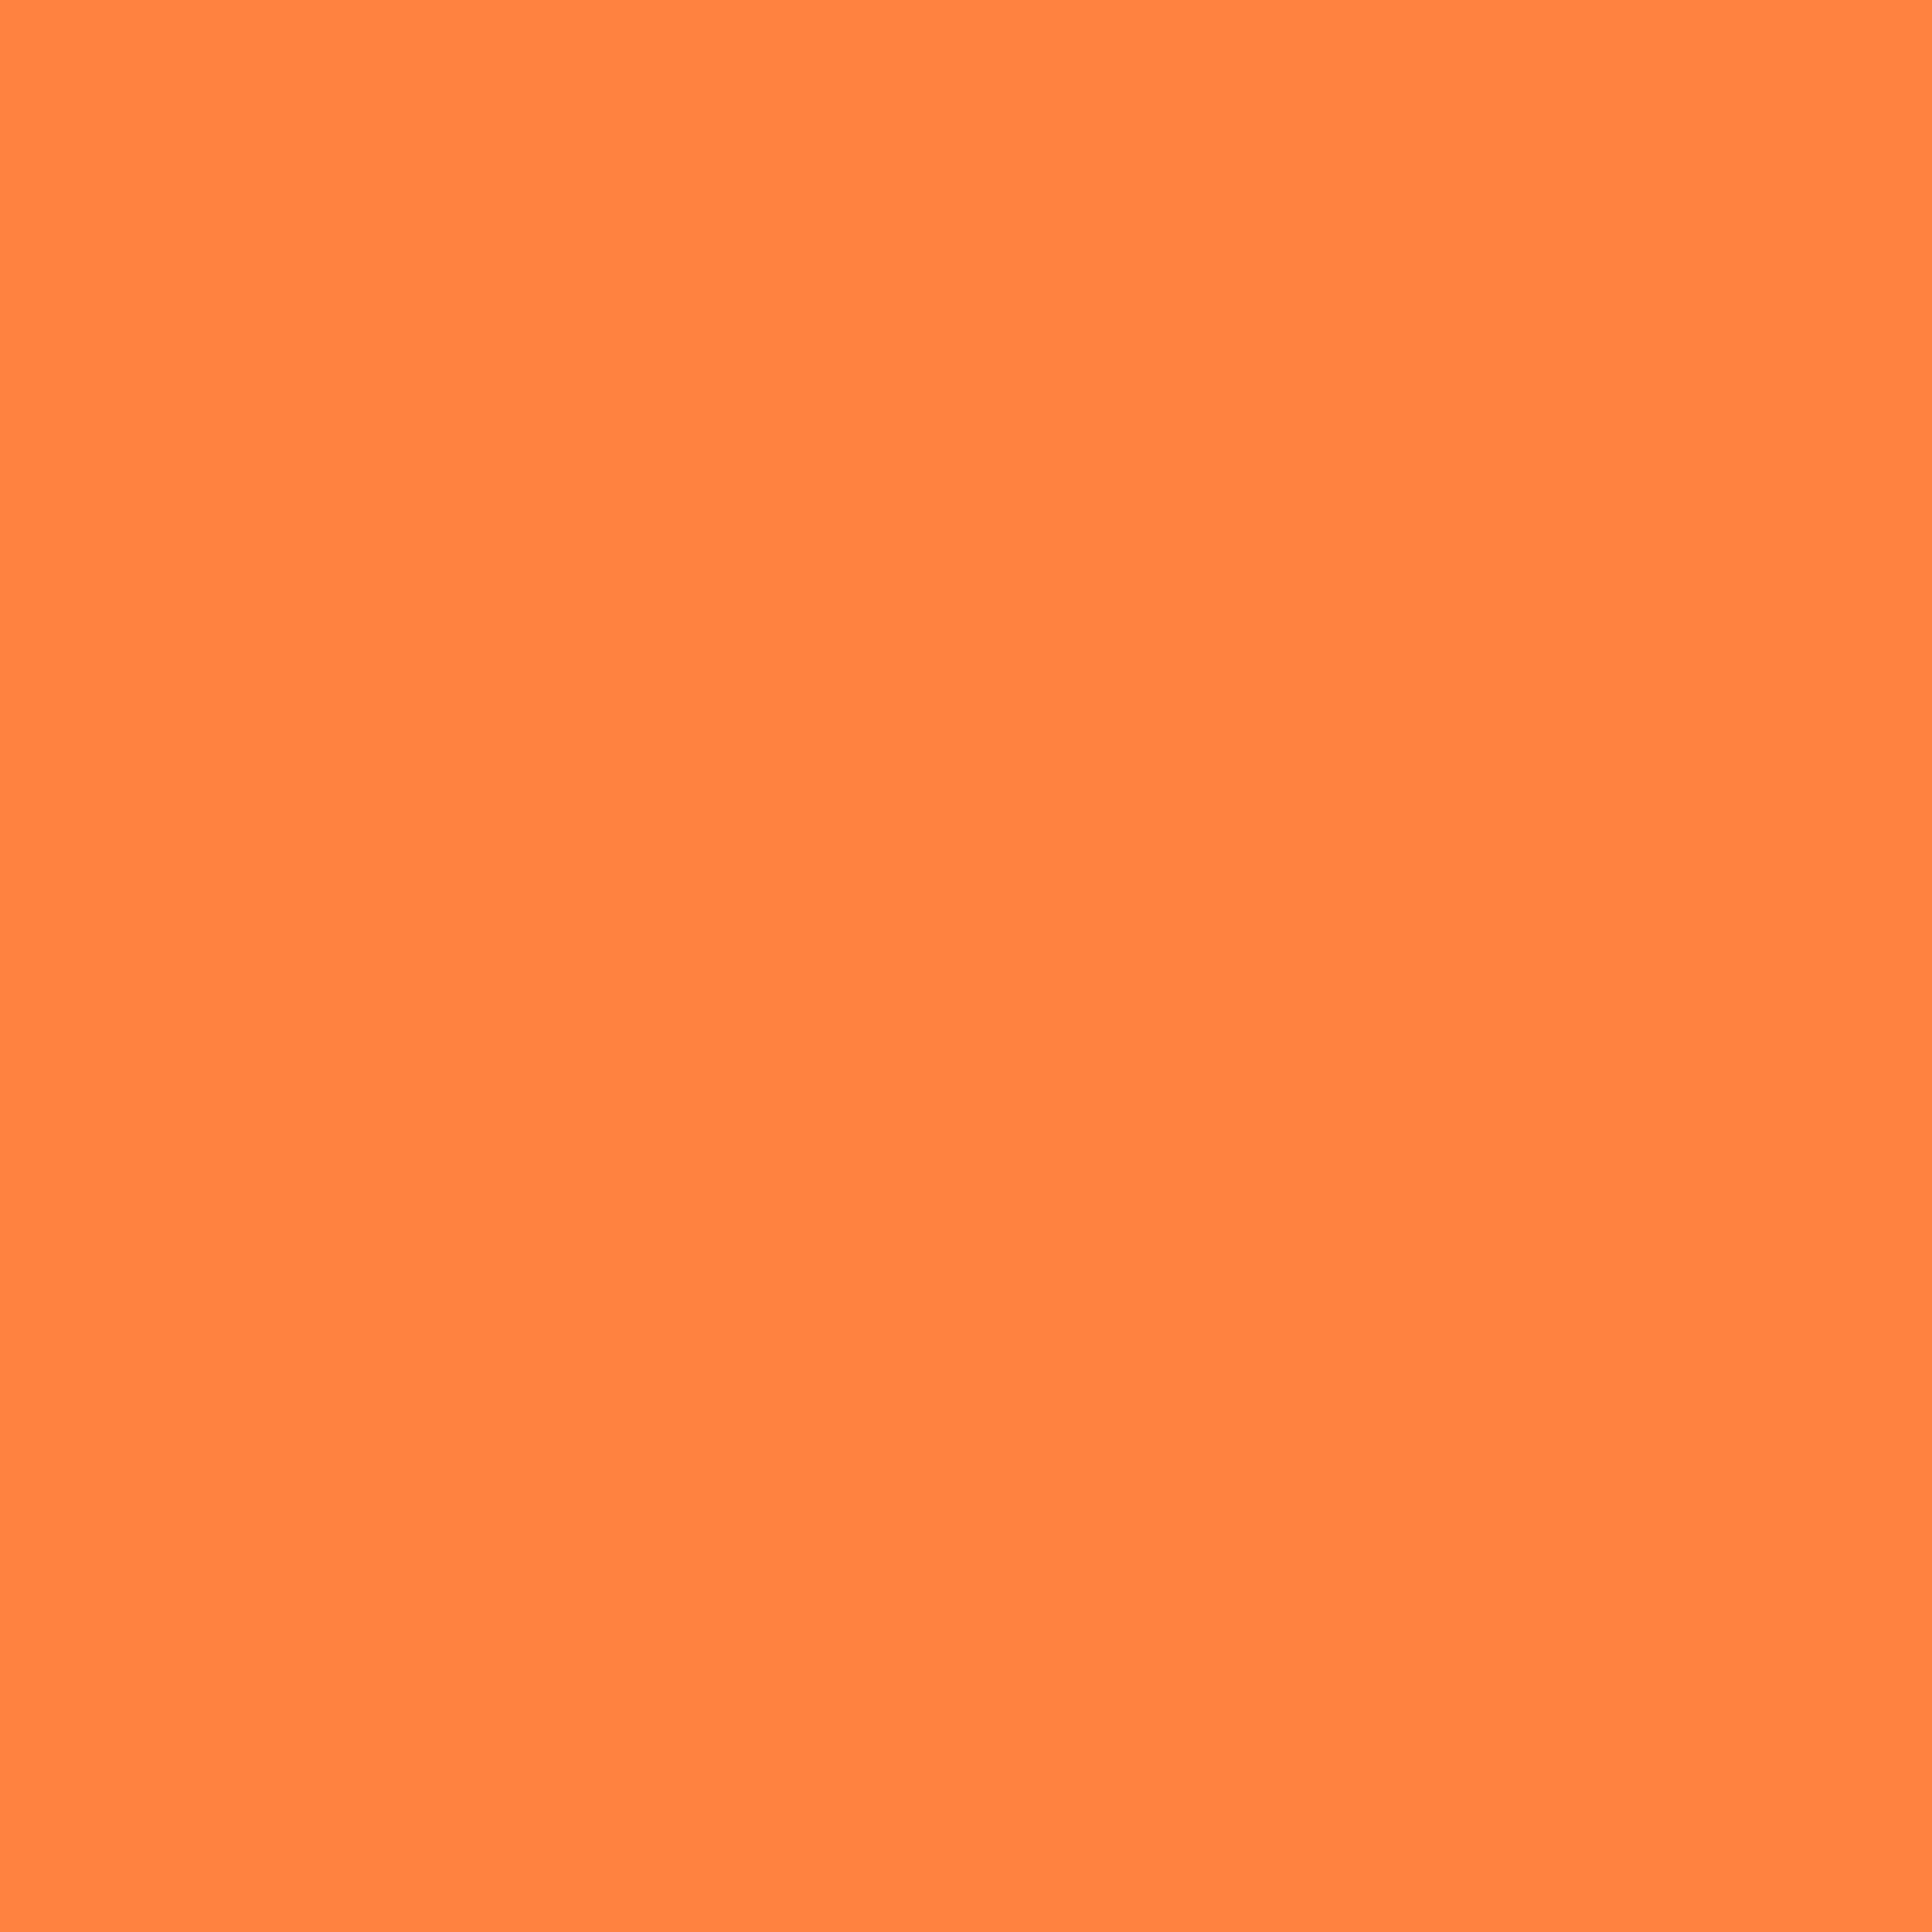 2048x2048 Mango Tango Solid Color Background